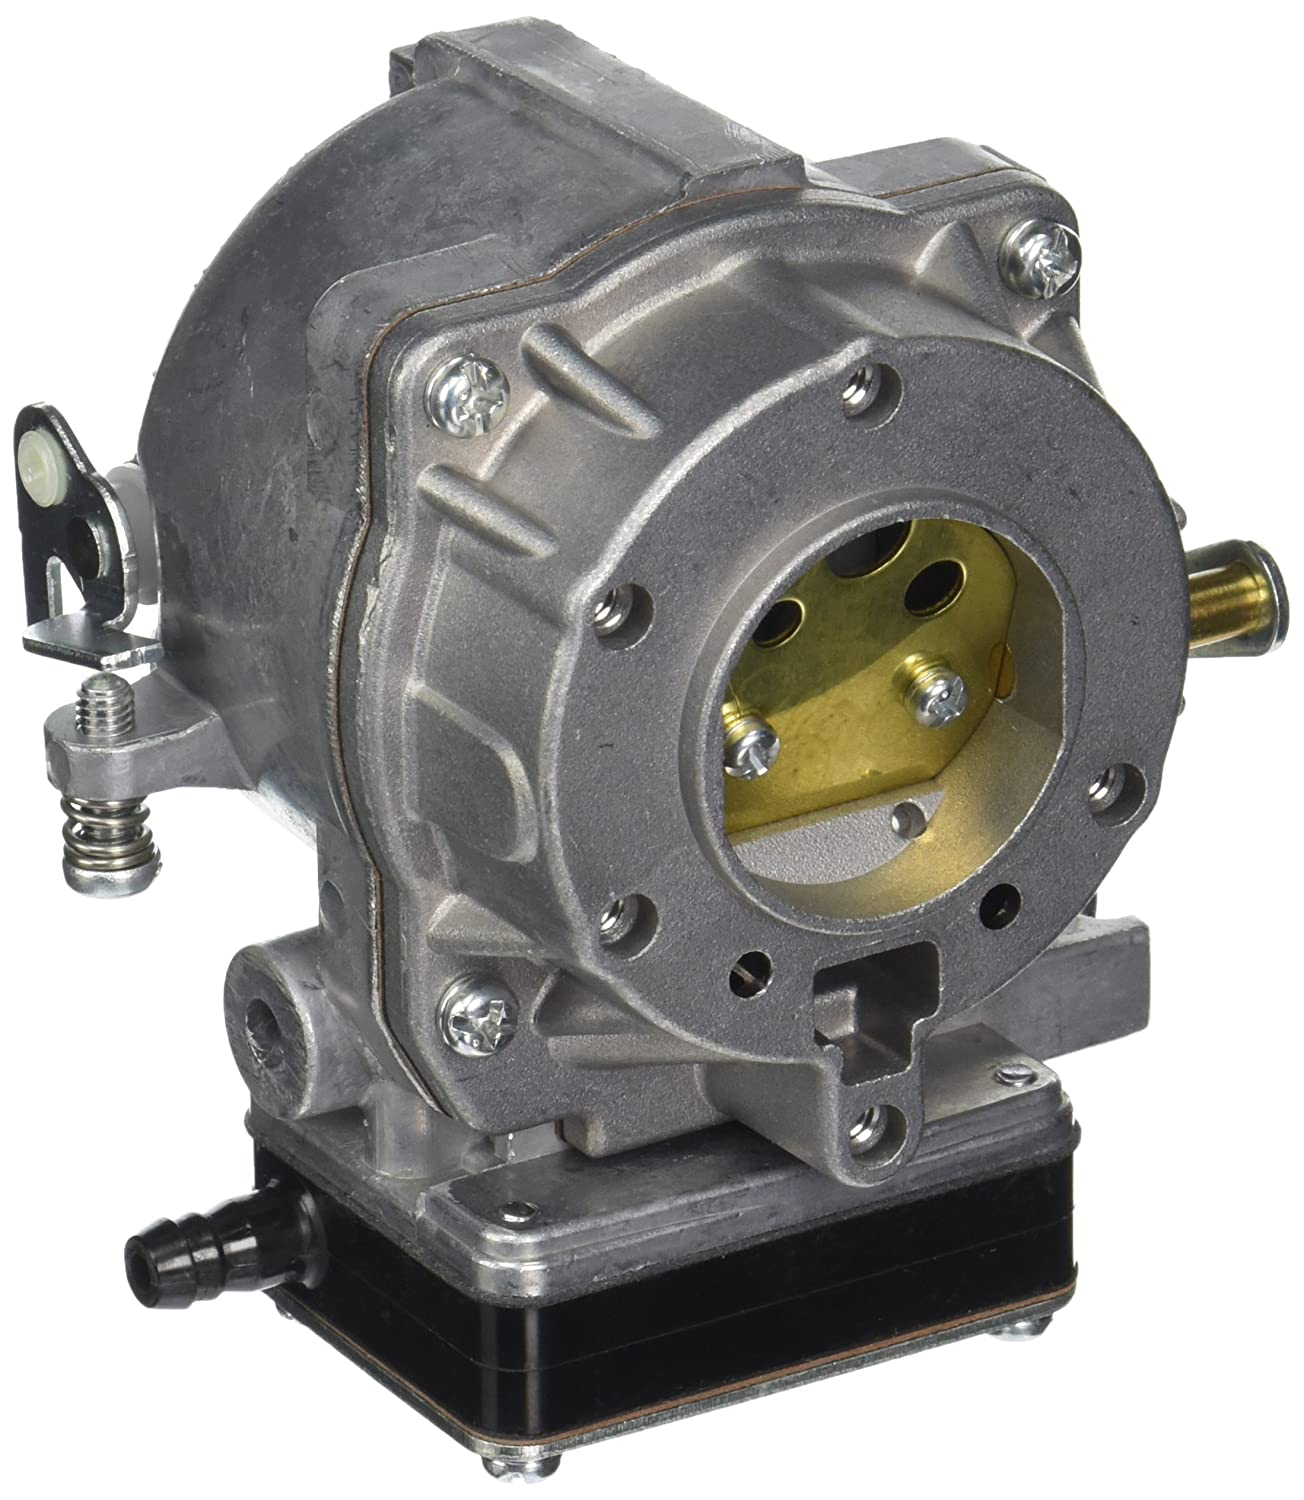 Briggs & Stratton 693480 Carburetor Replacement for Models 499306, 495181 and 495026